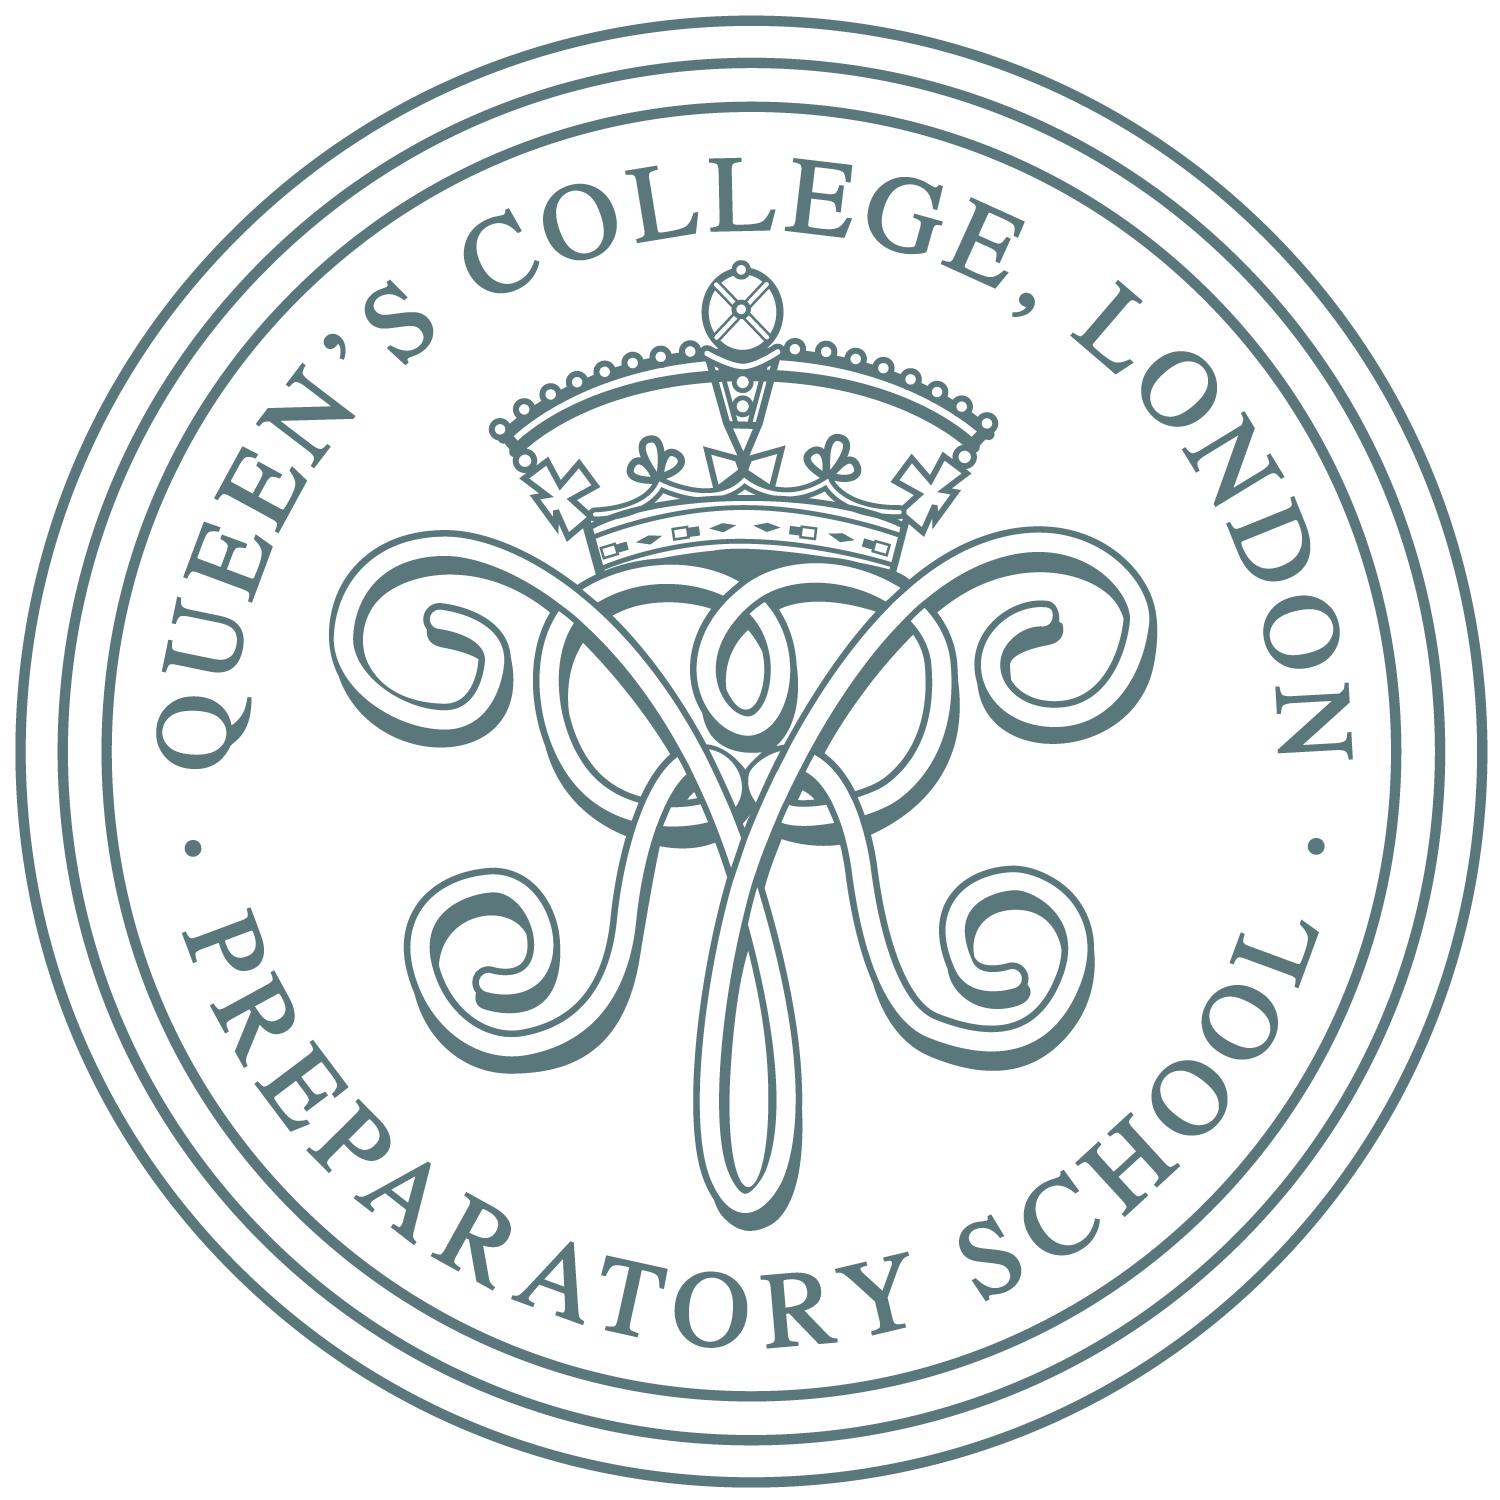 Queen's College Preparatory School logo